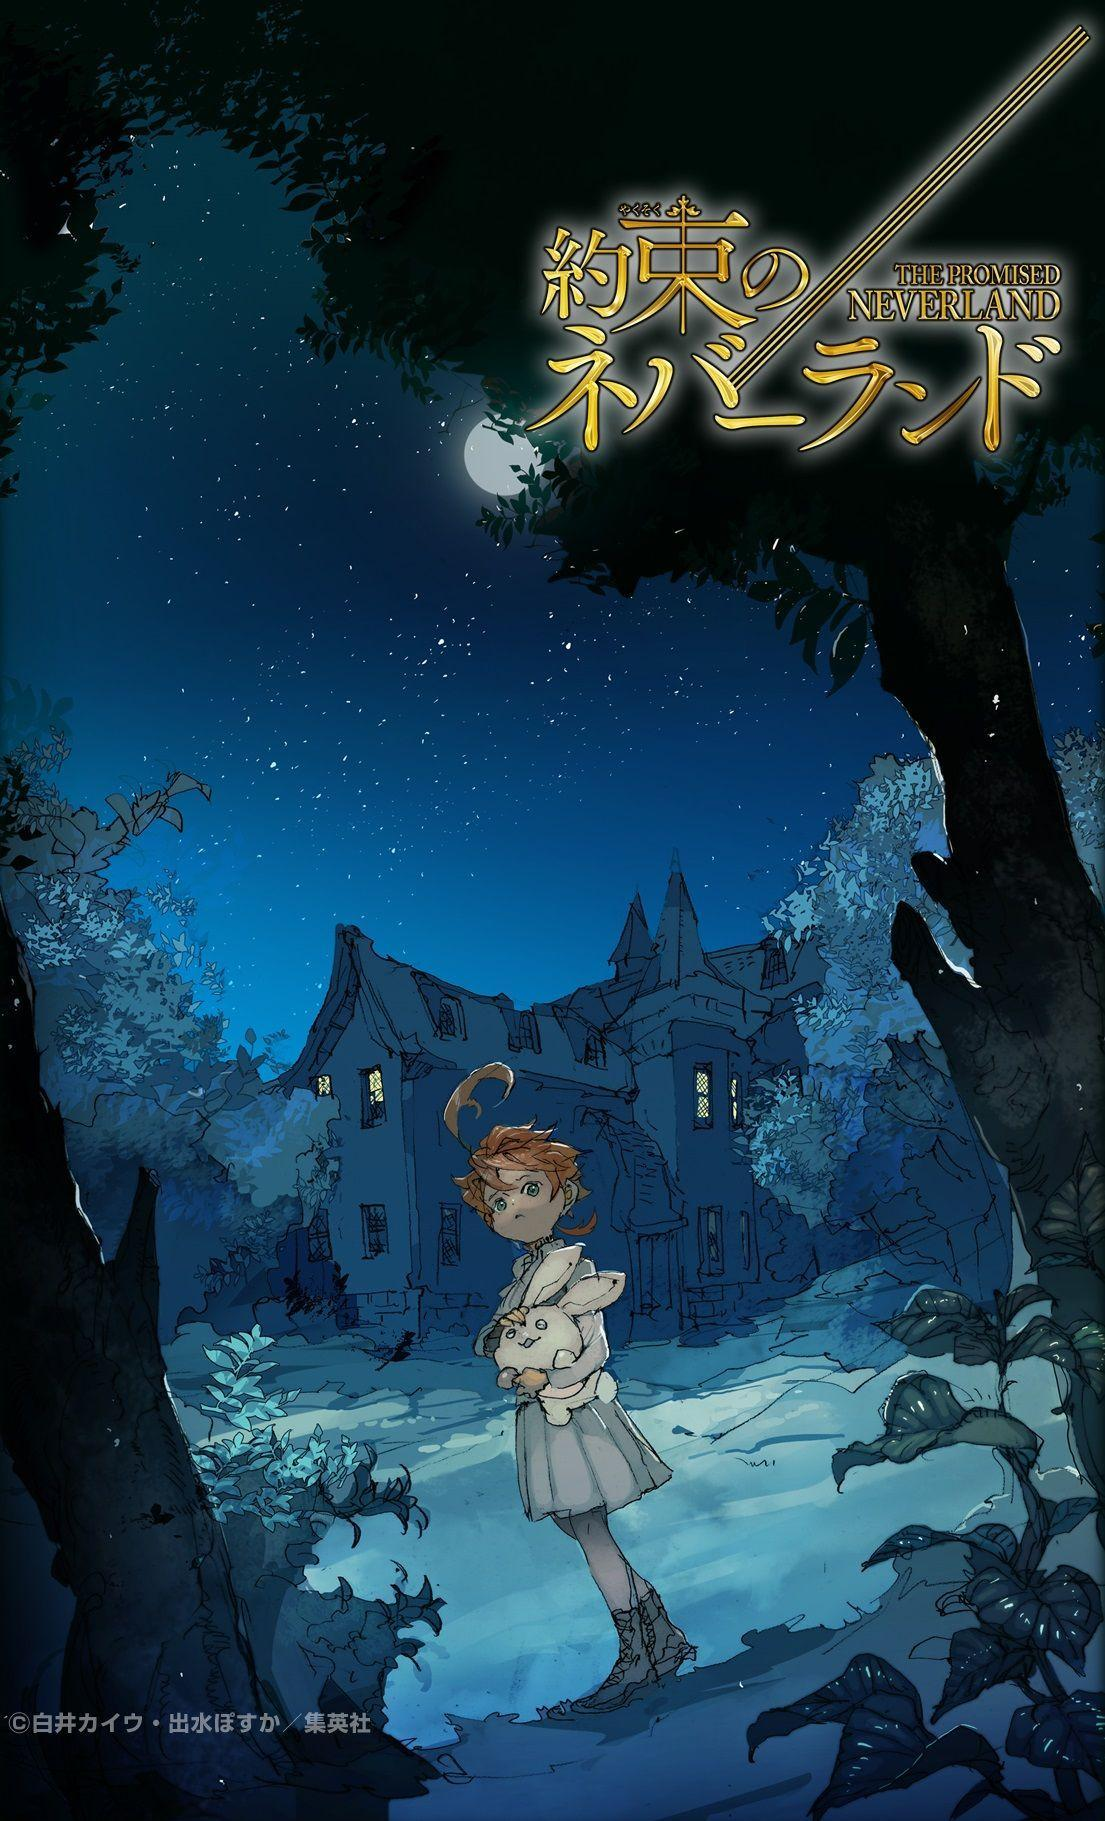 The Promised Neverland Wallpapers - Wallpaper Cave